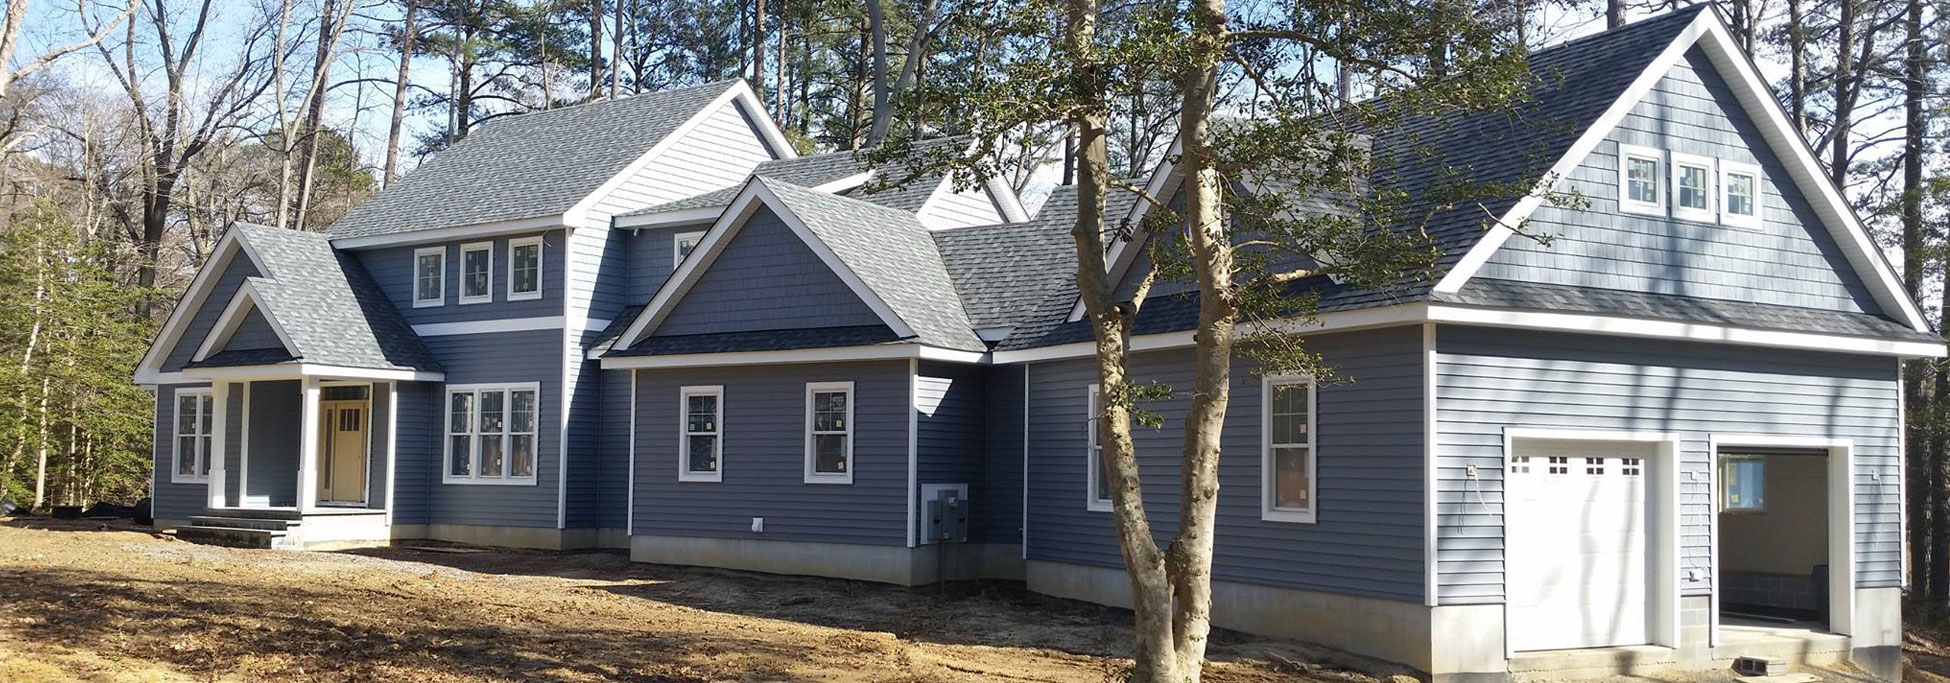 Custom Home with Vinyl Siding